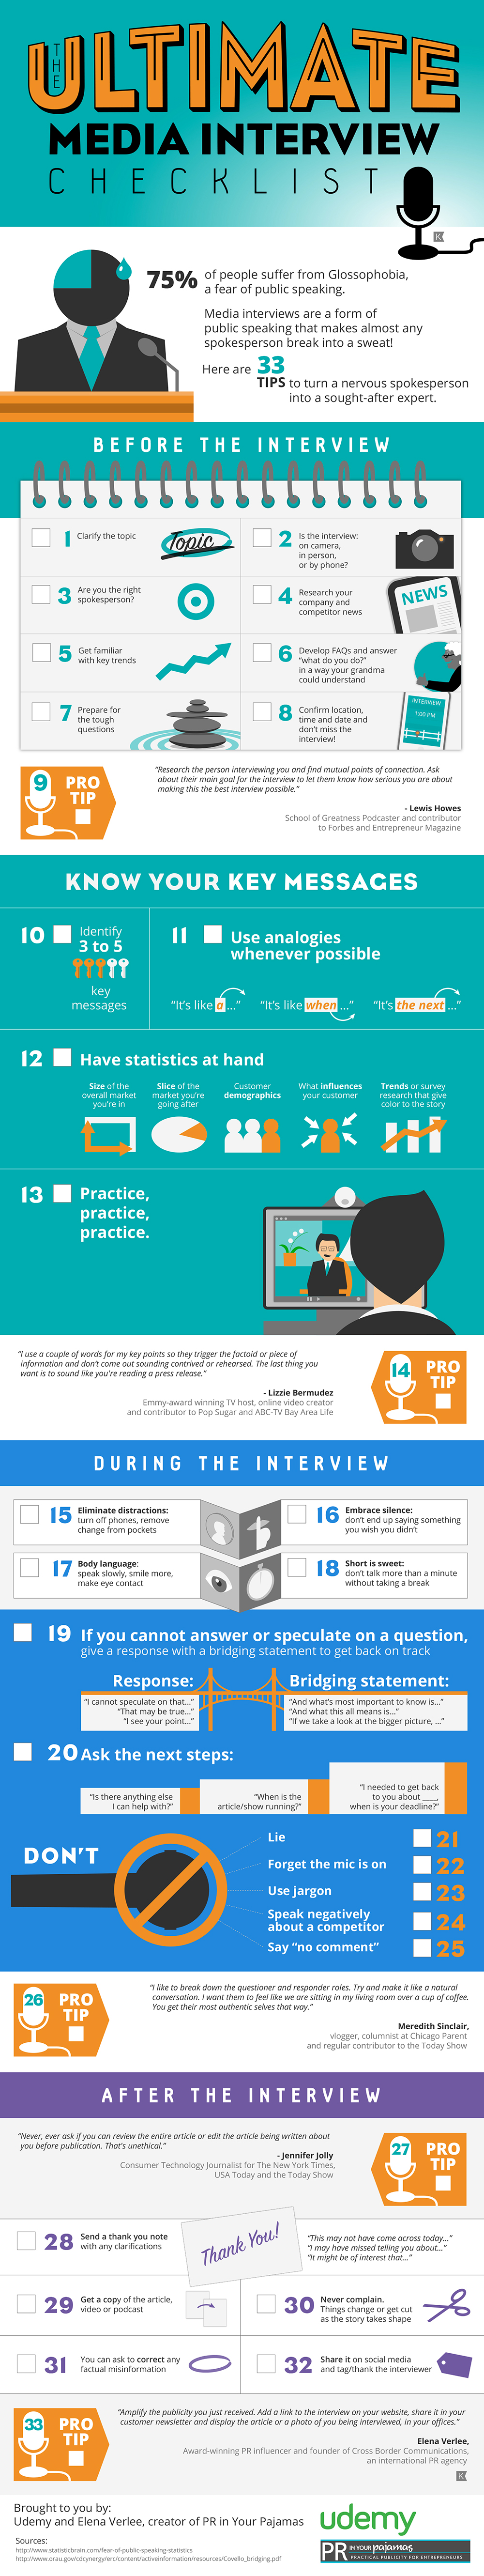 The Ultimate Media Interview Checklist #infographic